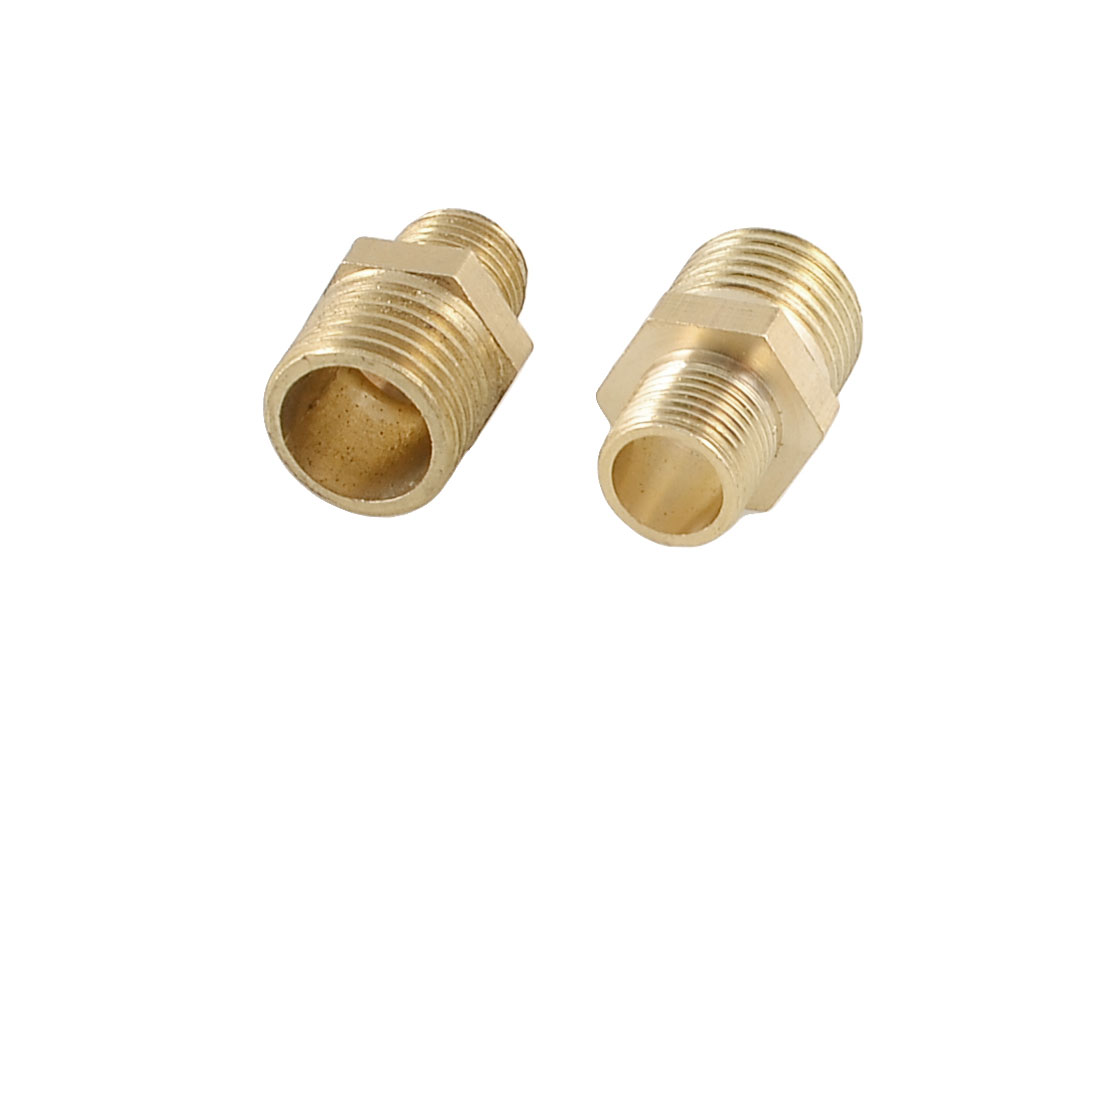 2 Pcs Air Pneumatic Pipe 12.5mm to 9mm M/M Brass Hex Reducing Nipple Coupler Fittings